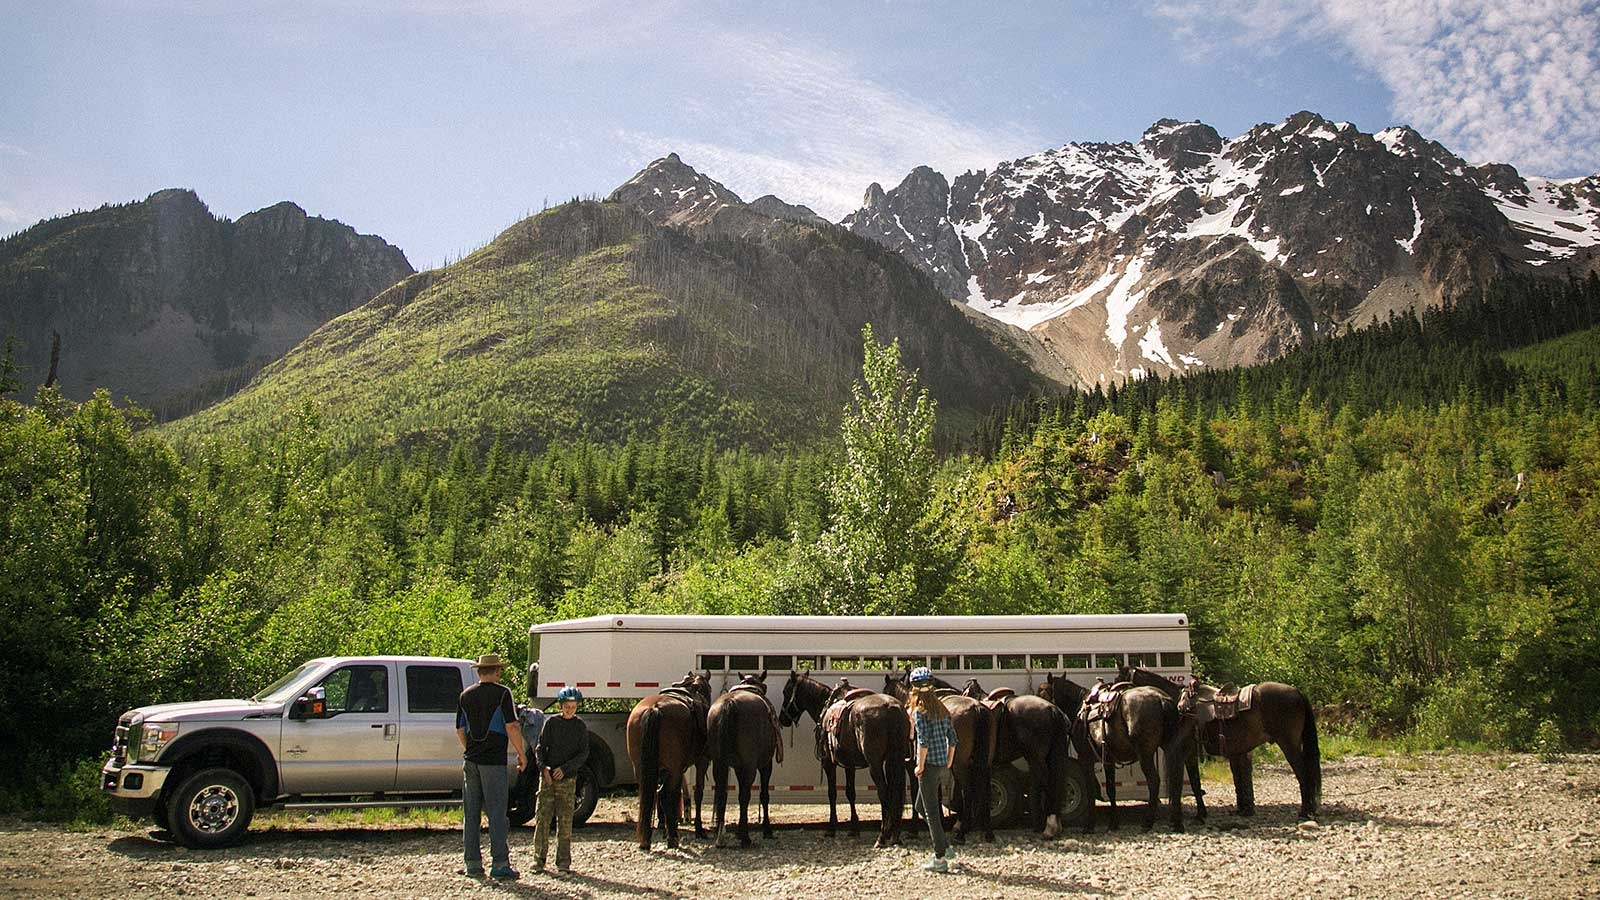 Group of horses in front of trailer and snow capped mountain near Pemberton in background